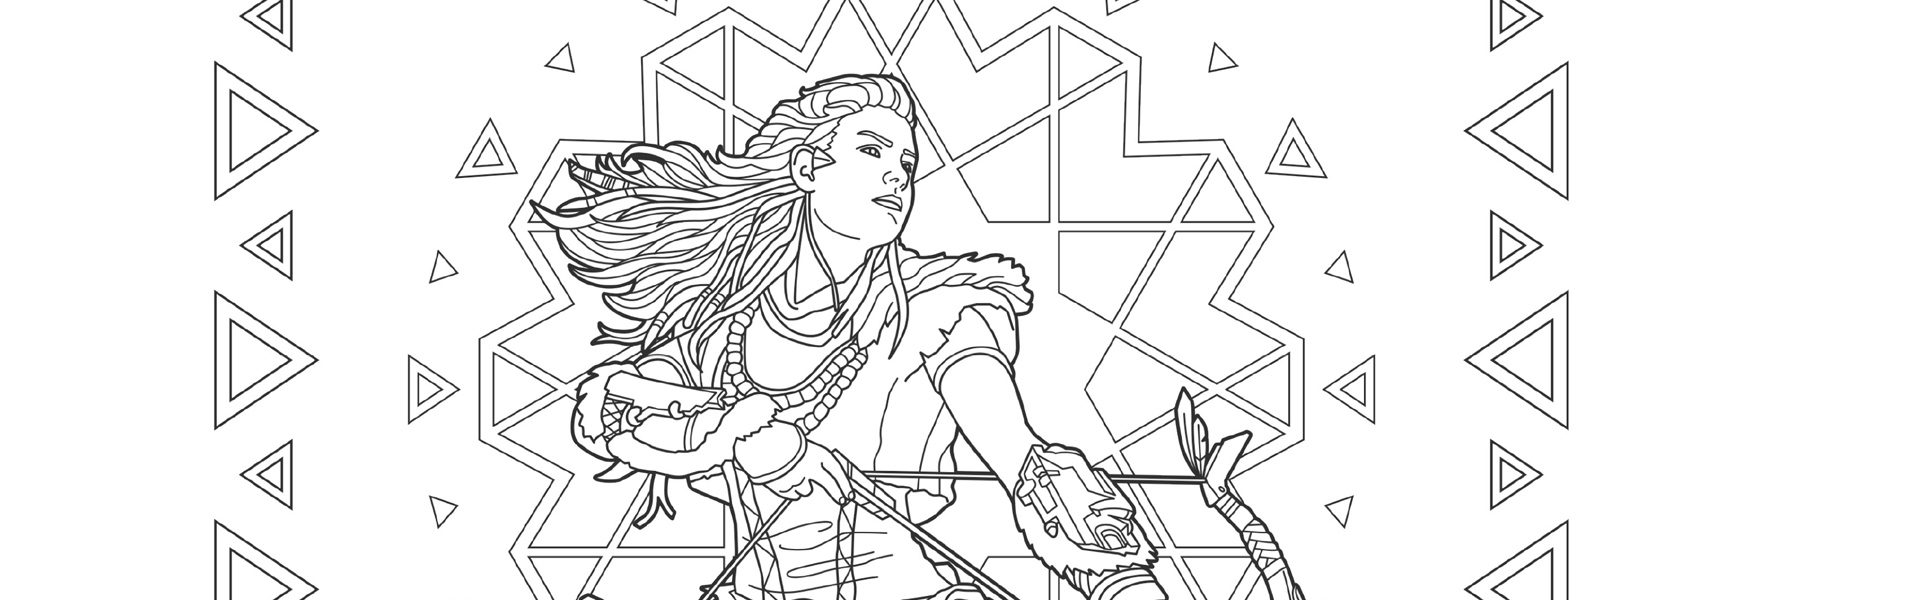 Get creative with PlayStation colouring book, Art For The